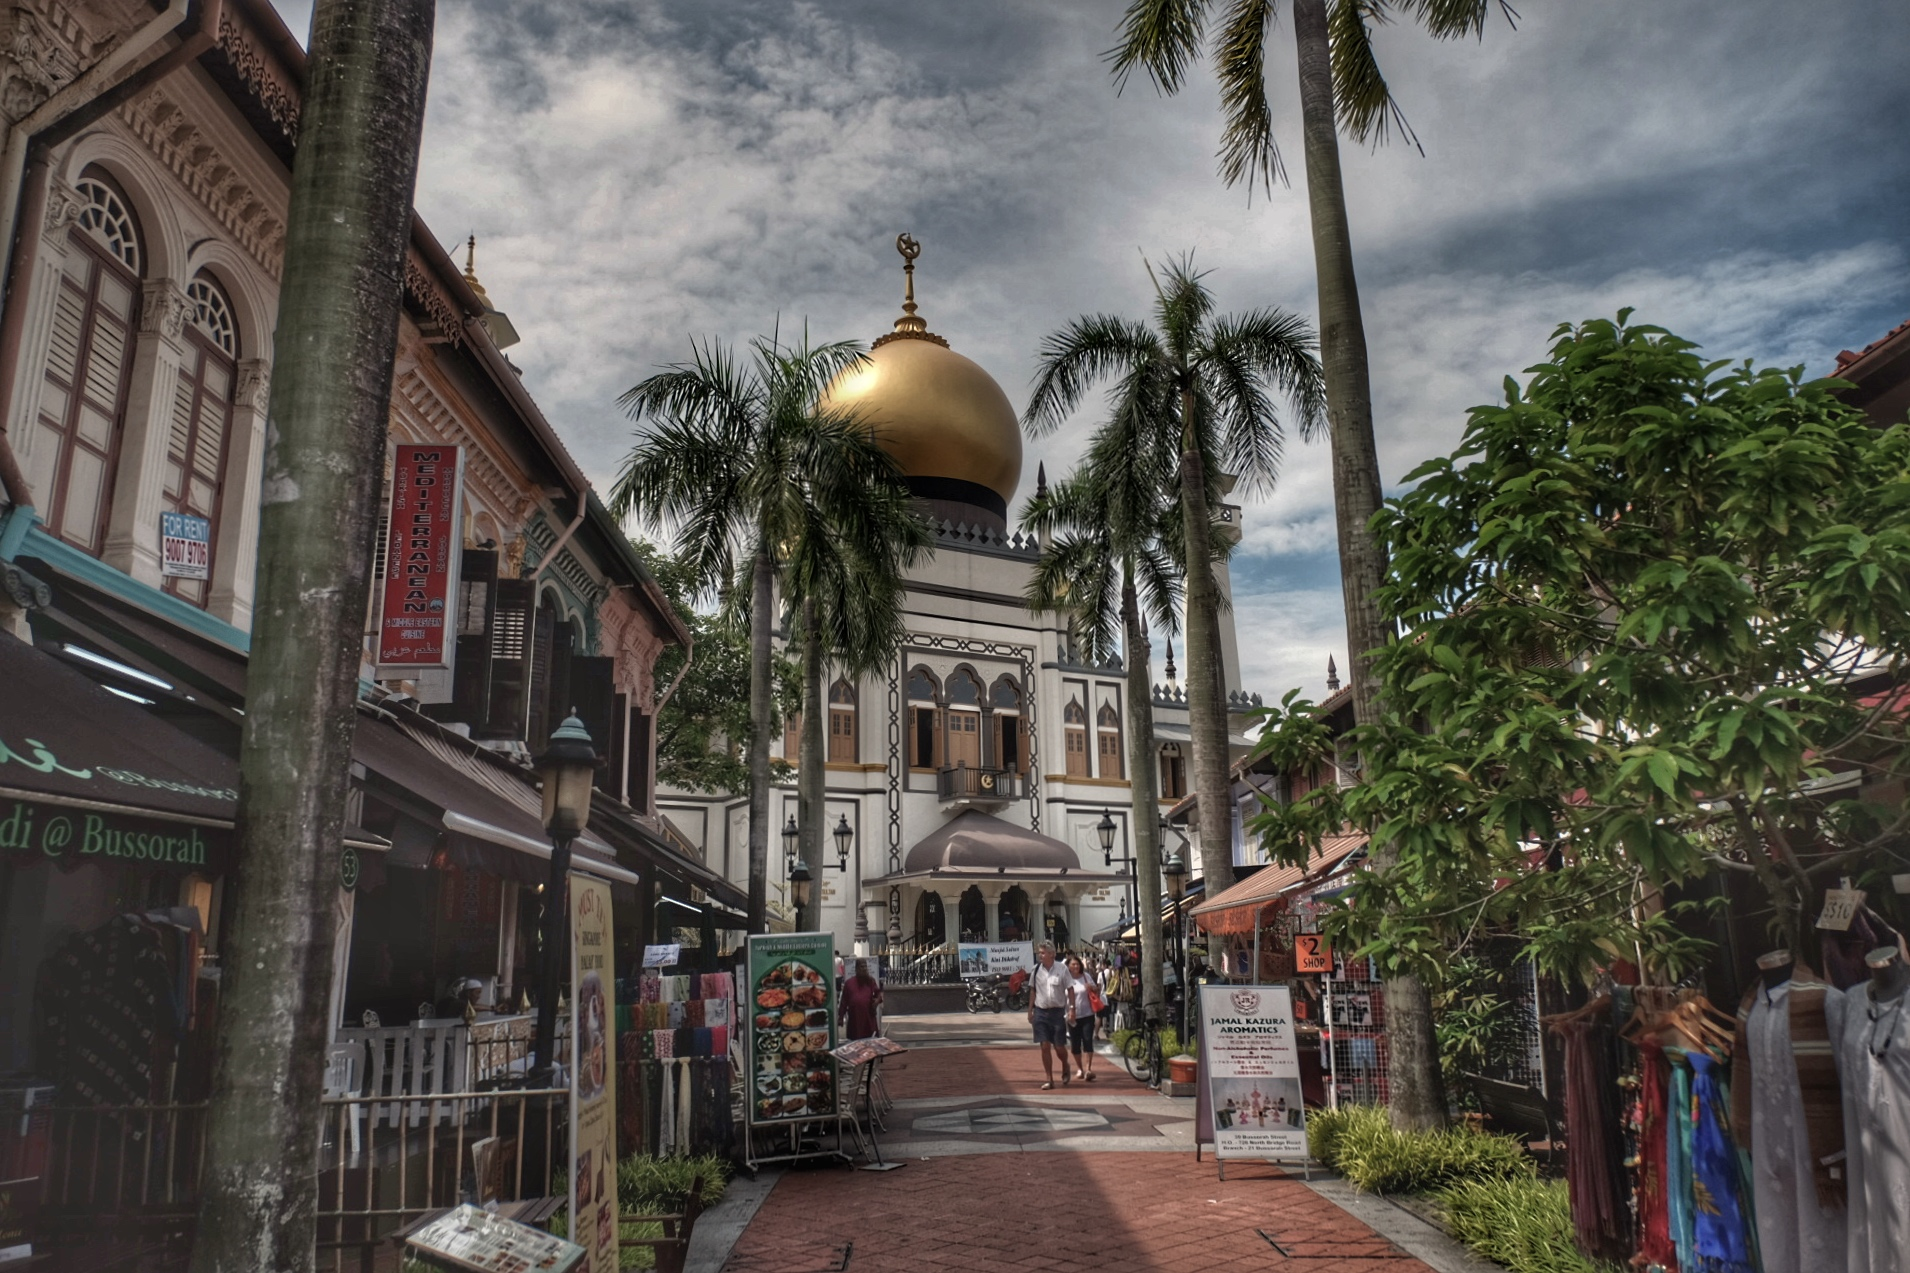 Jalan Sultan mosque.